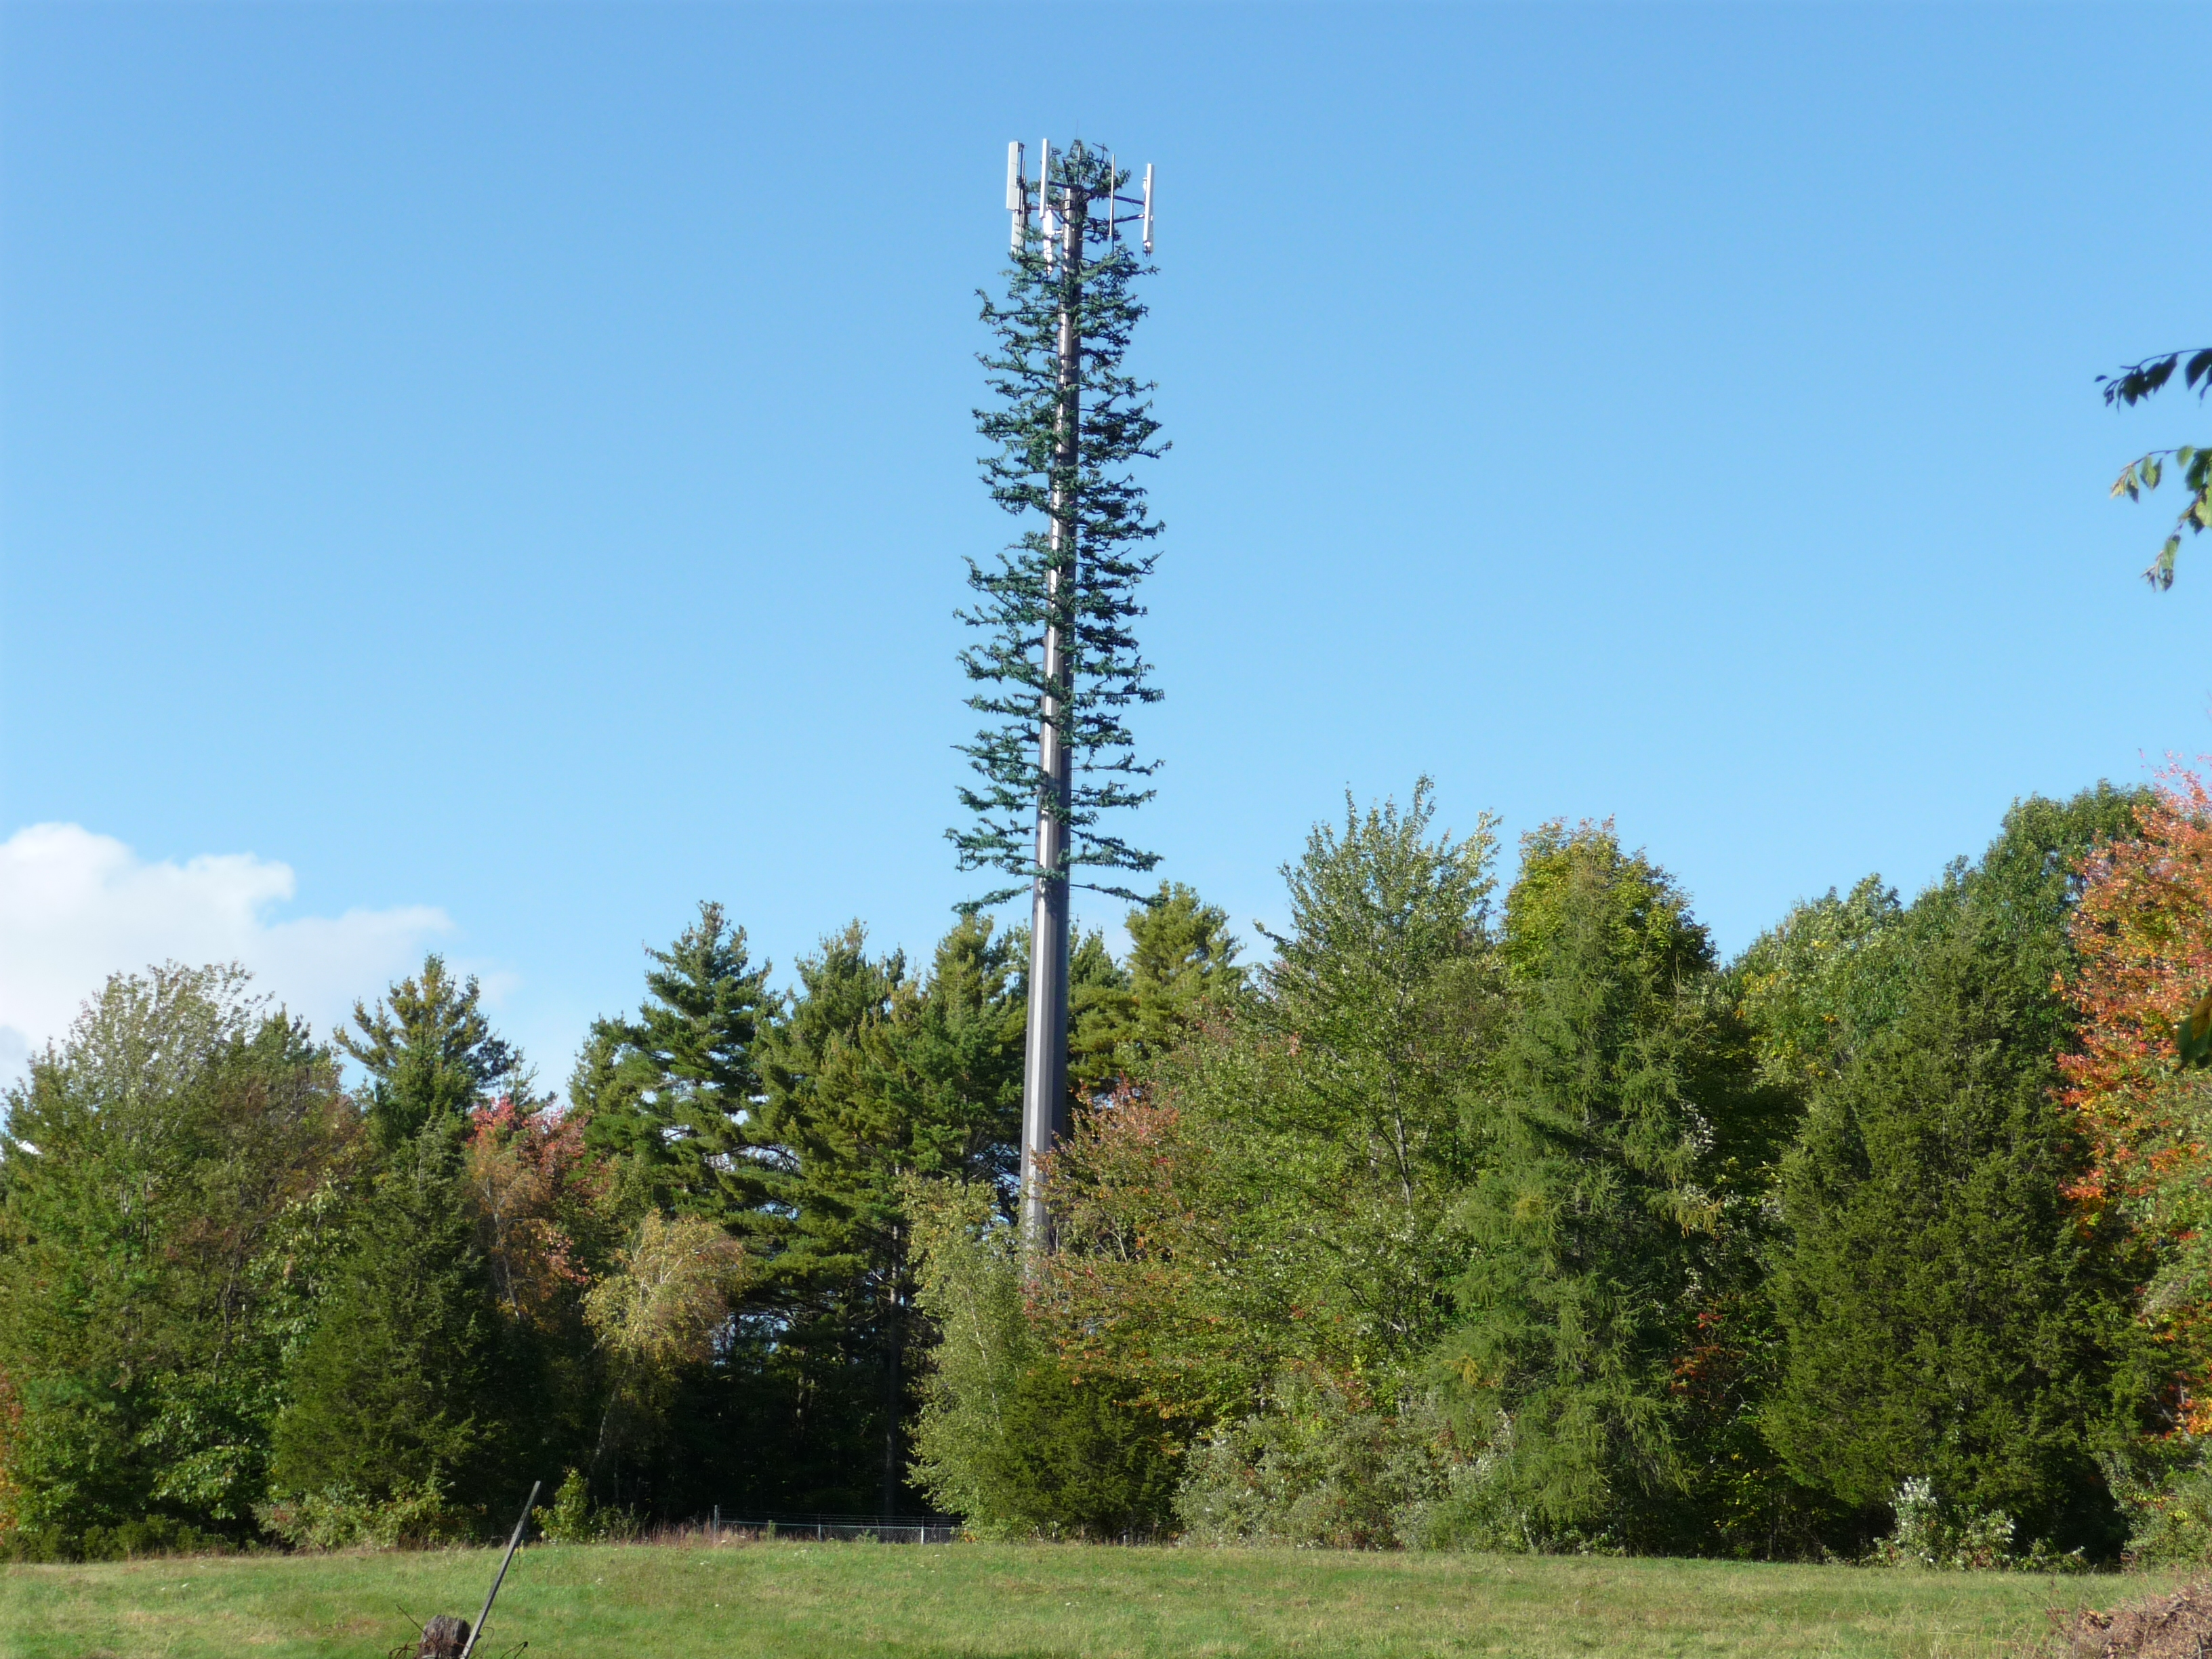 Cellular Phone Tower File:cell Phone Tower